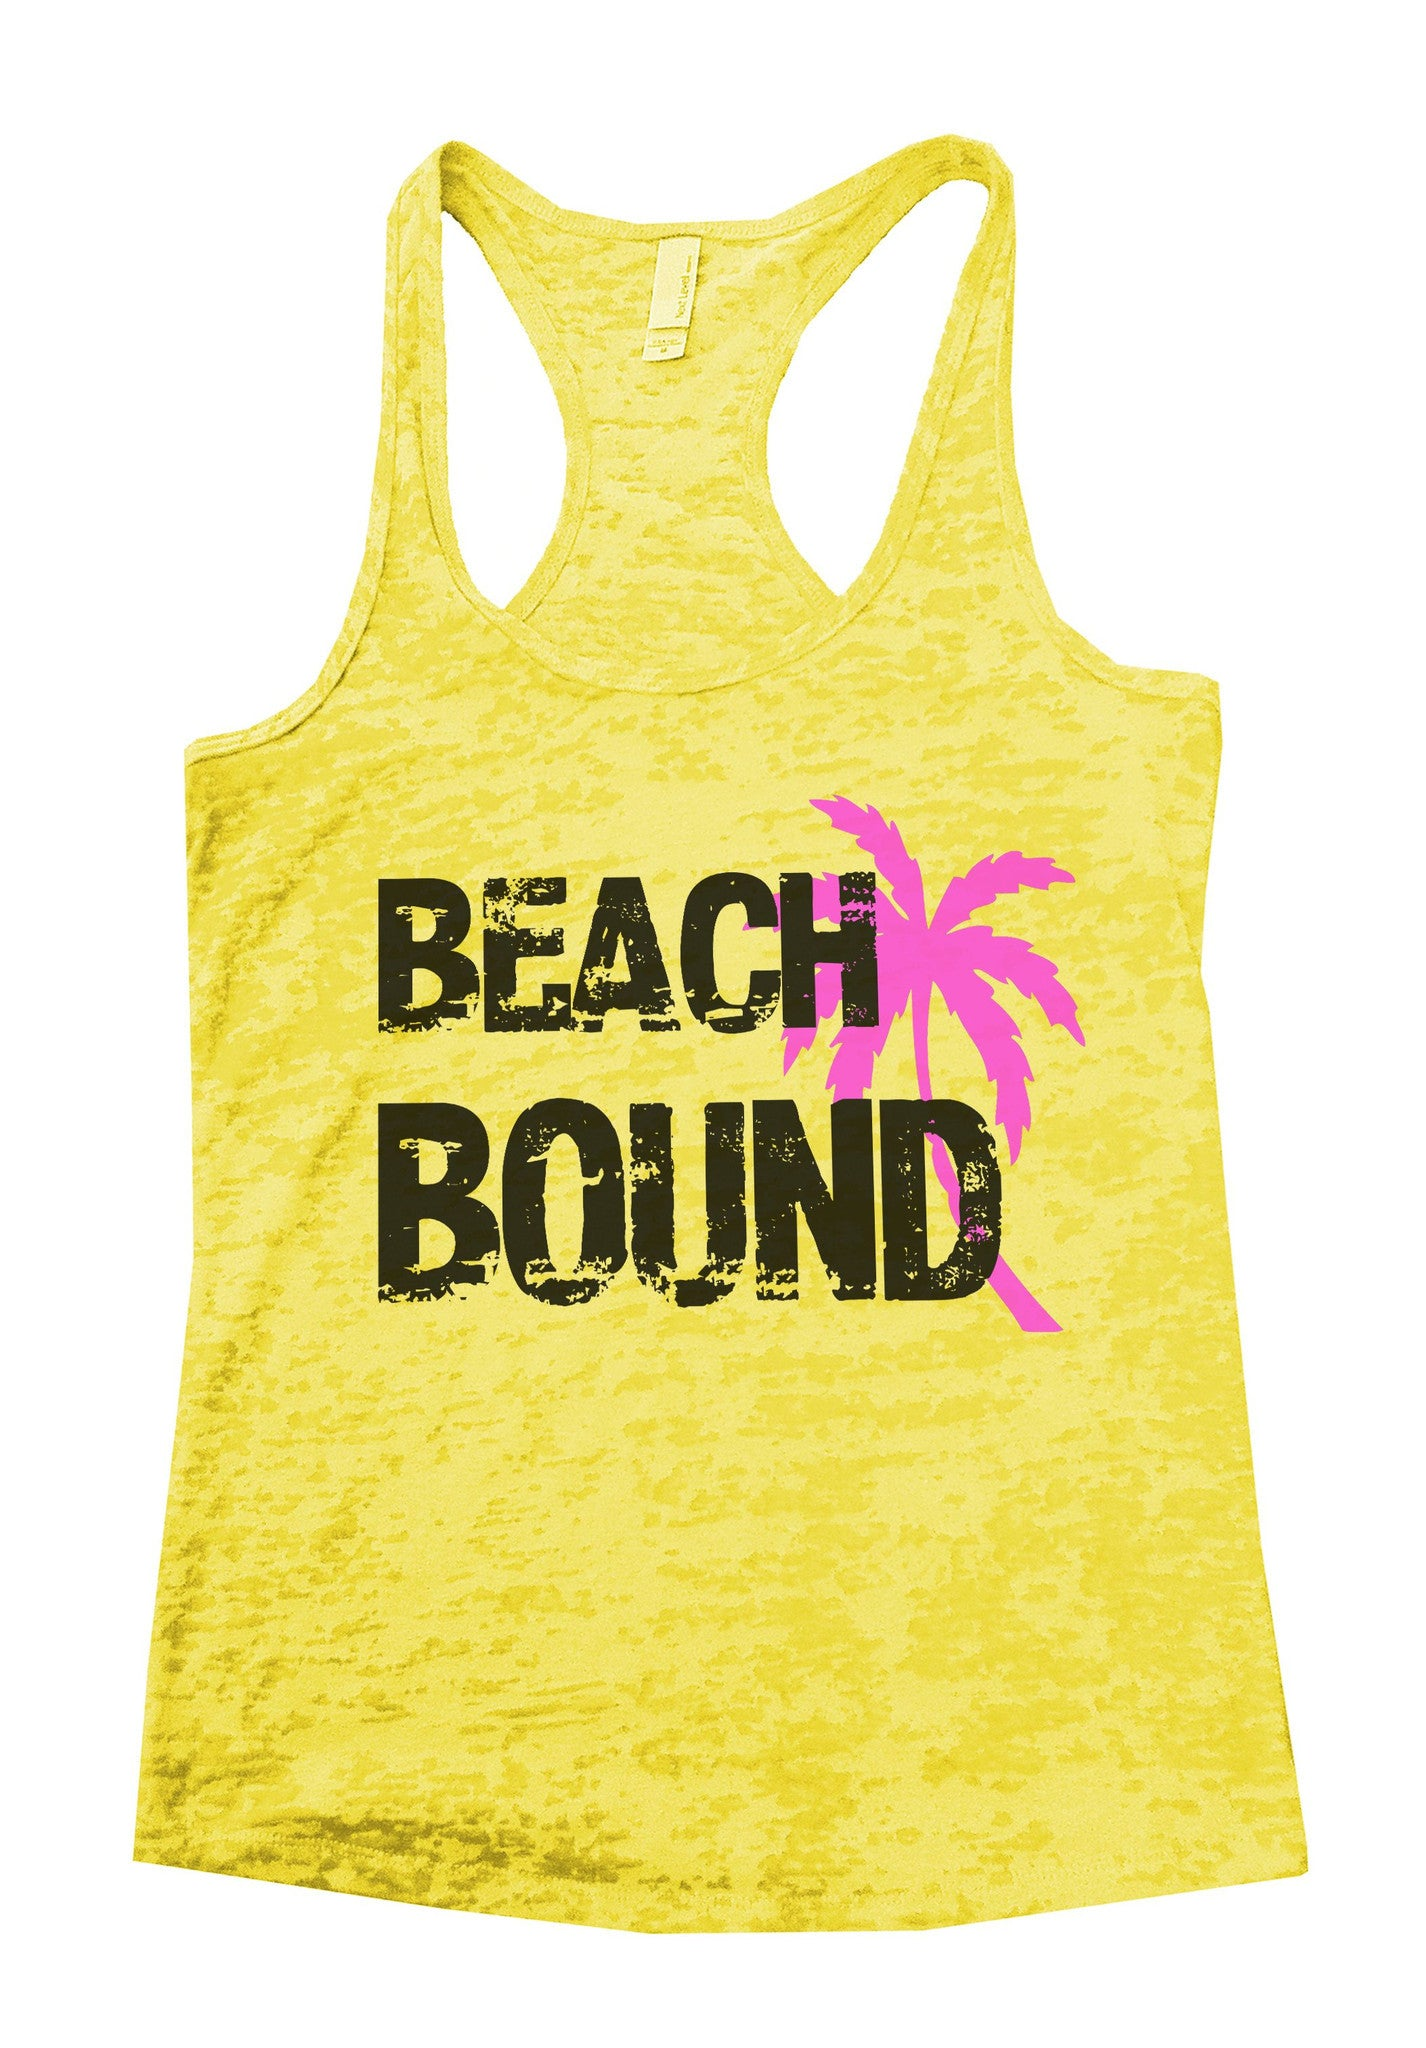 Beach Bound Burnout Tank Top By BurnoutTankTops.com - 748 - Funny Shirts Tank Tops Burnouts and Triblends  - 6